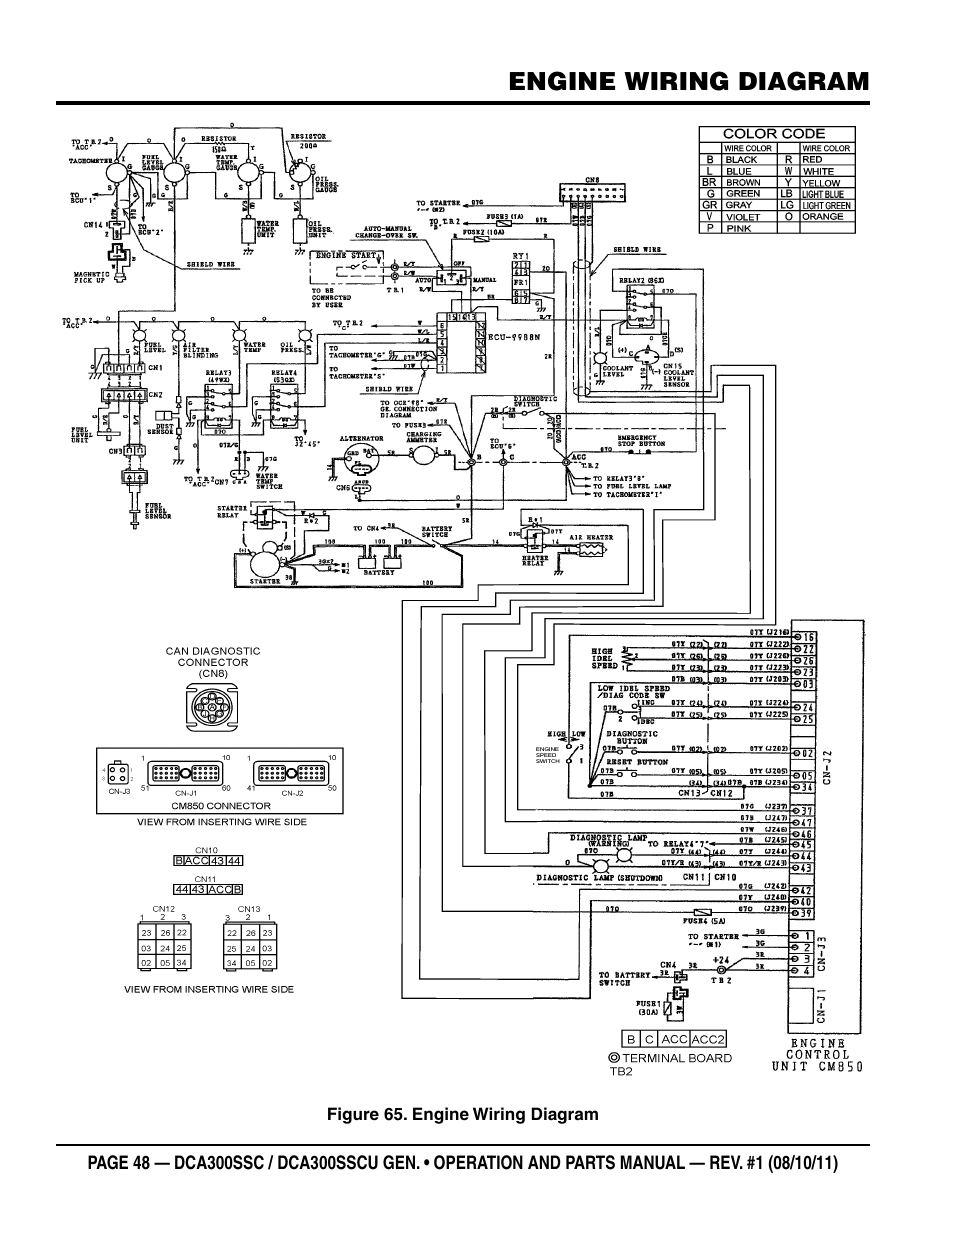 wiring diagram diesel engine